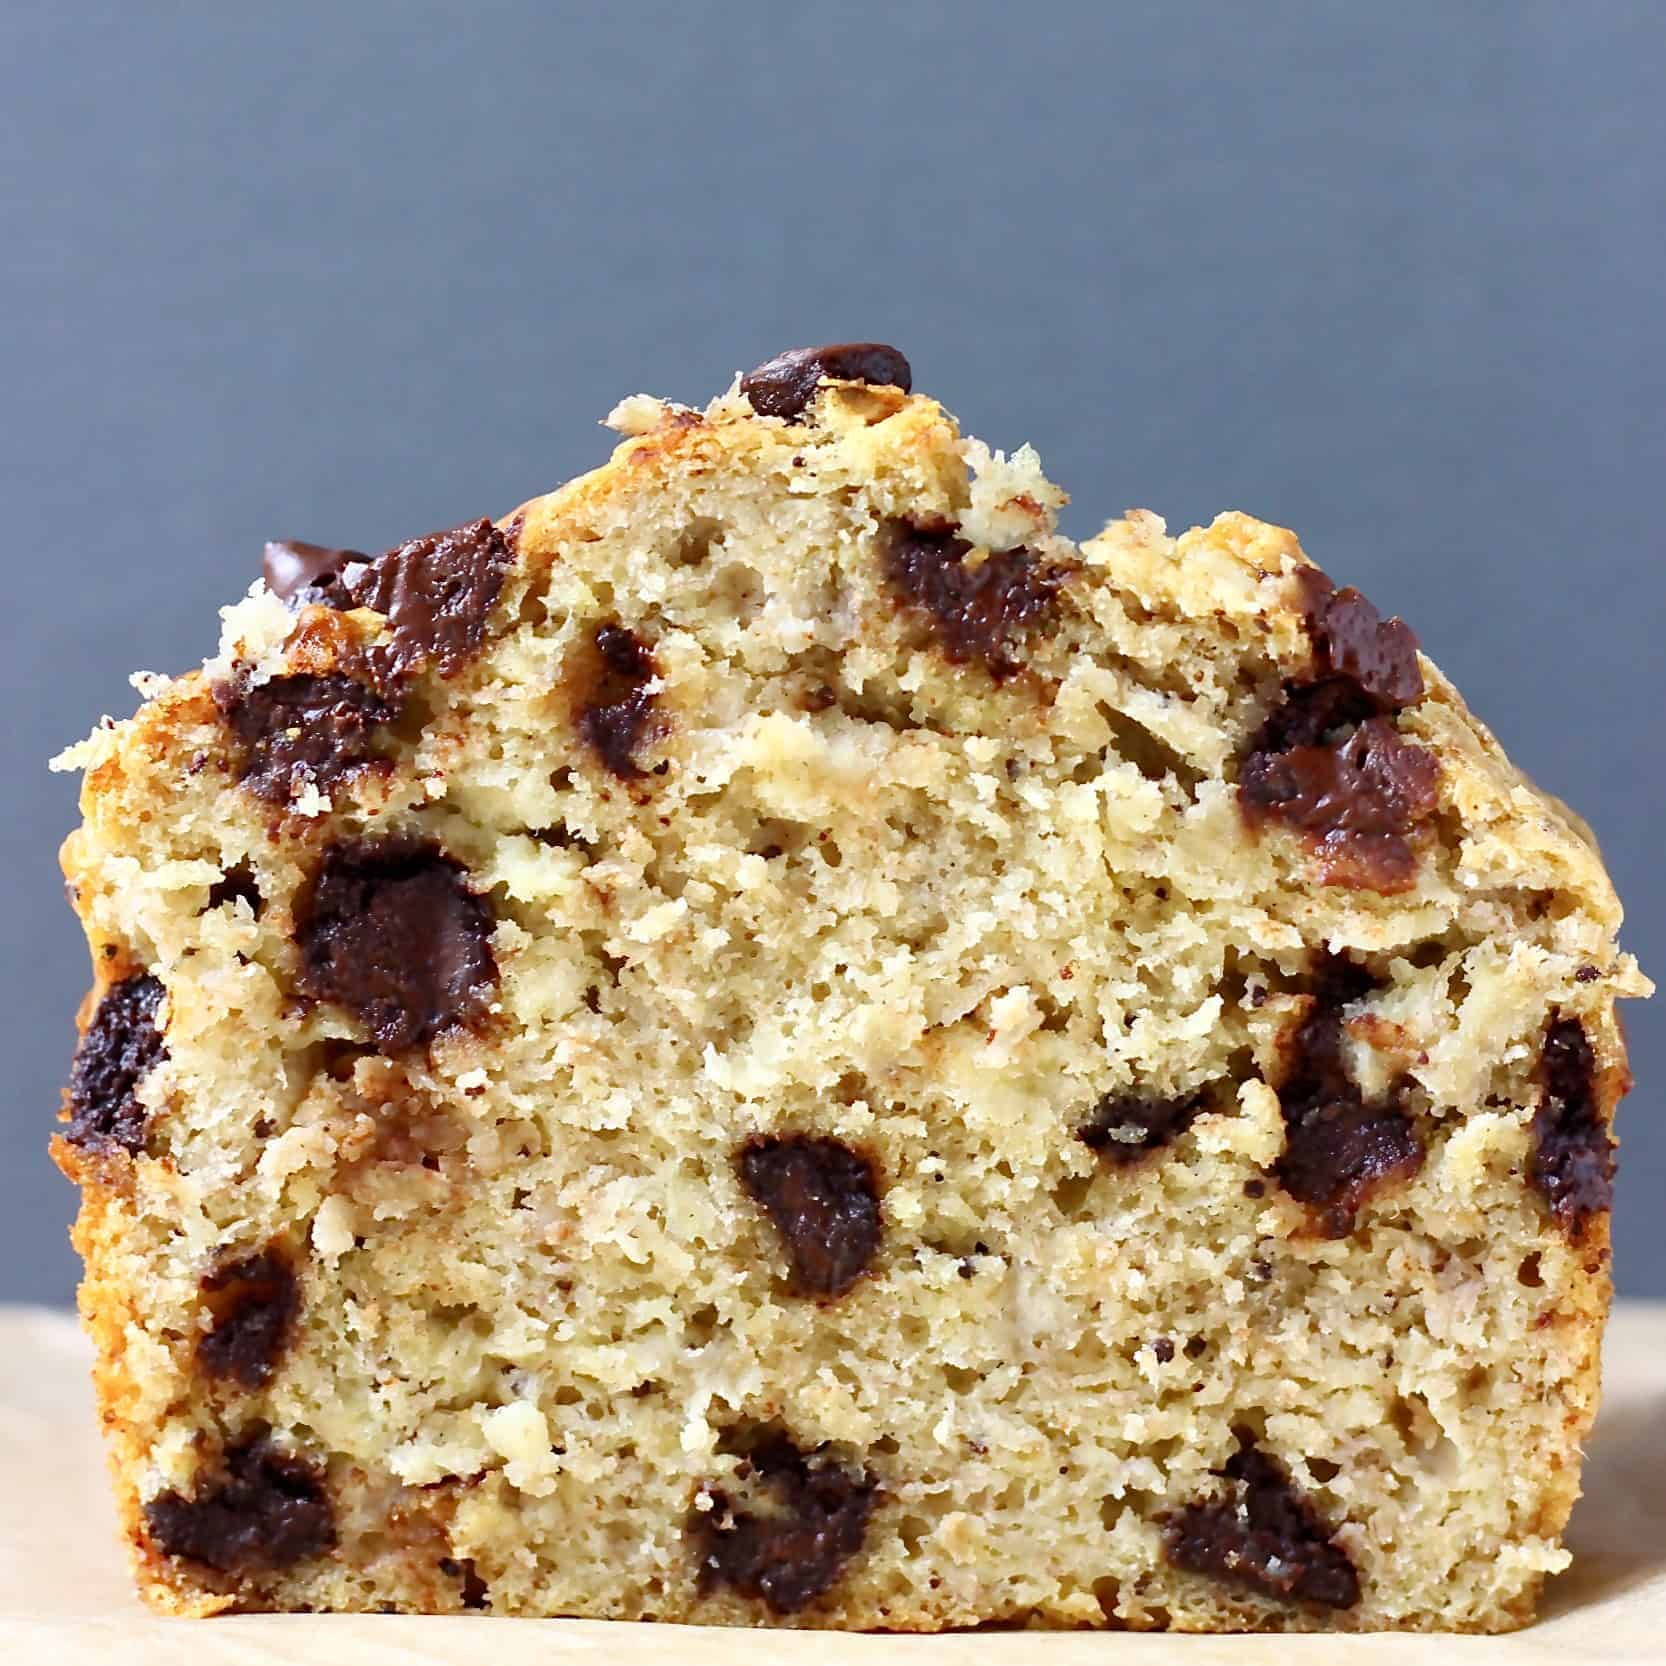 Gluten-Free Vegan Chocolate Chip Banana Bread